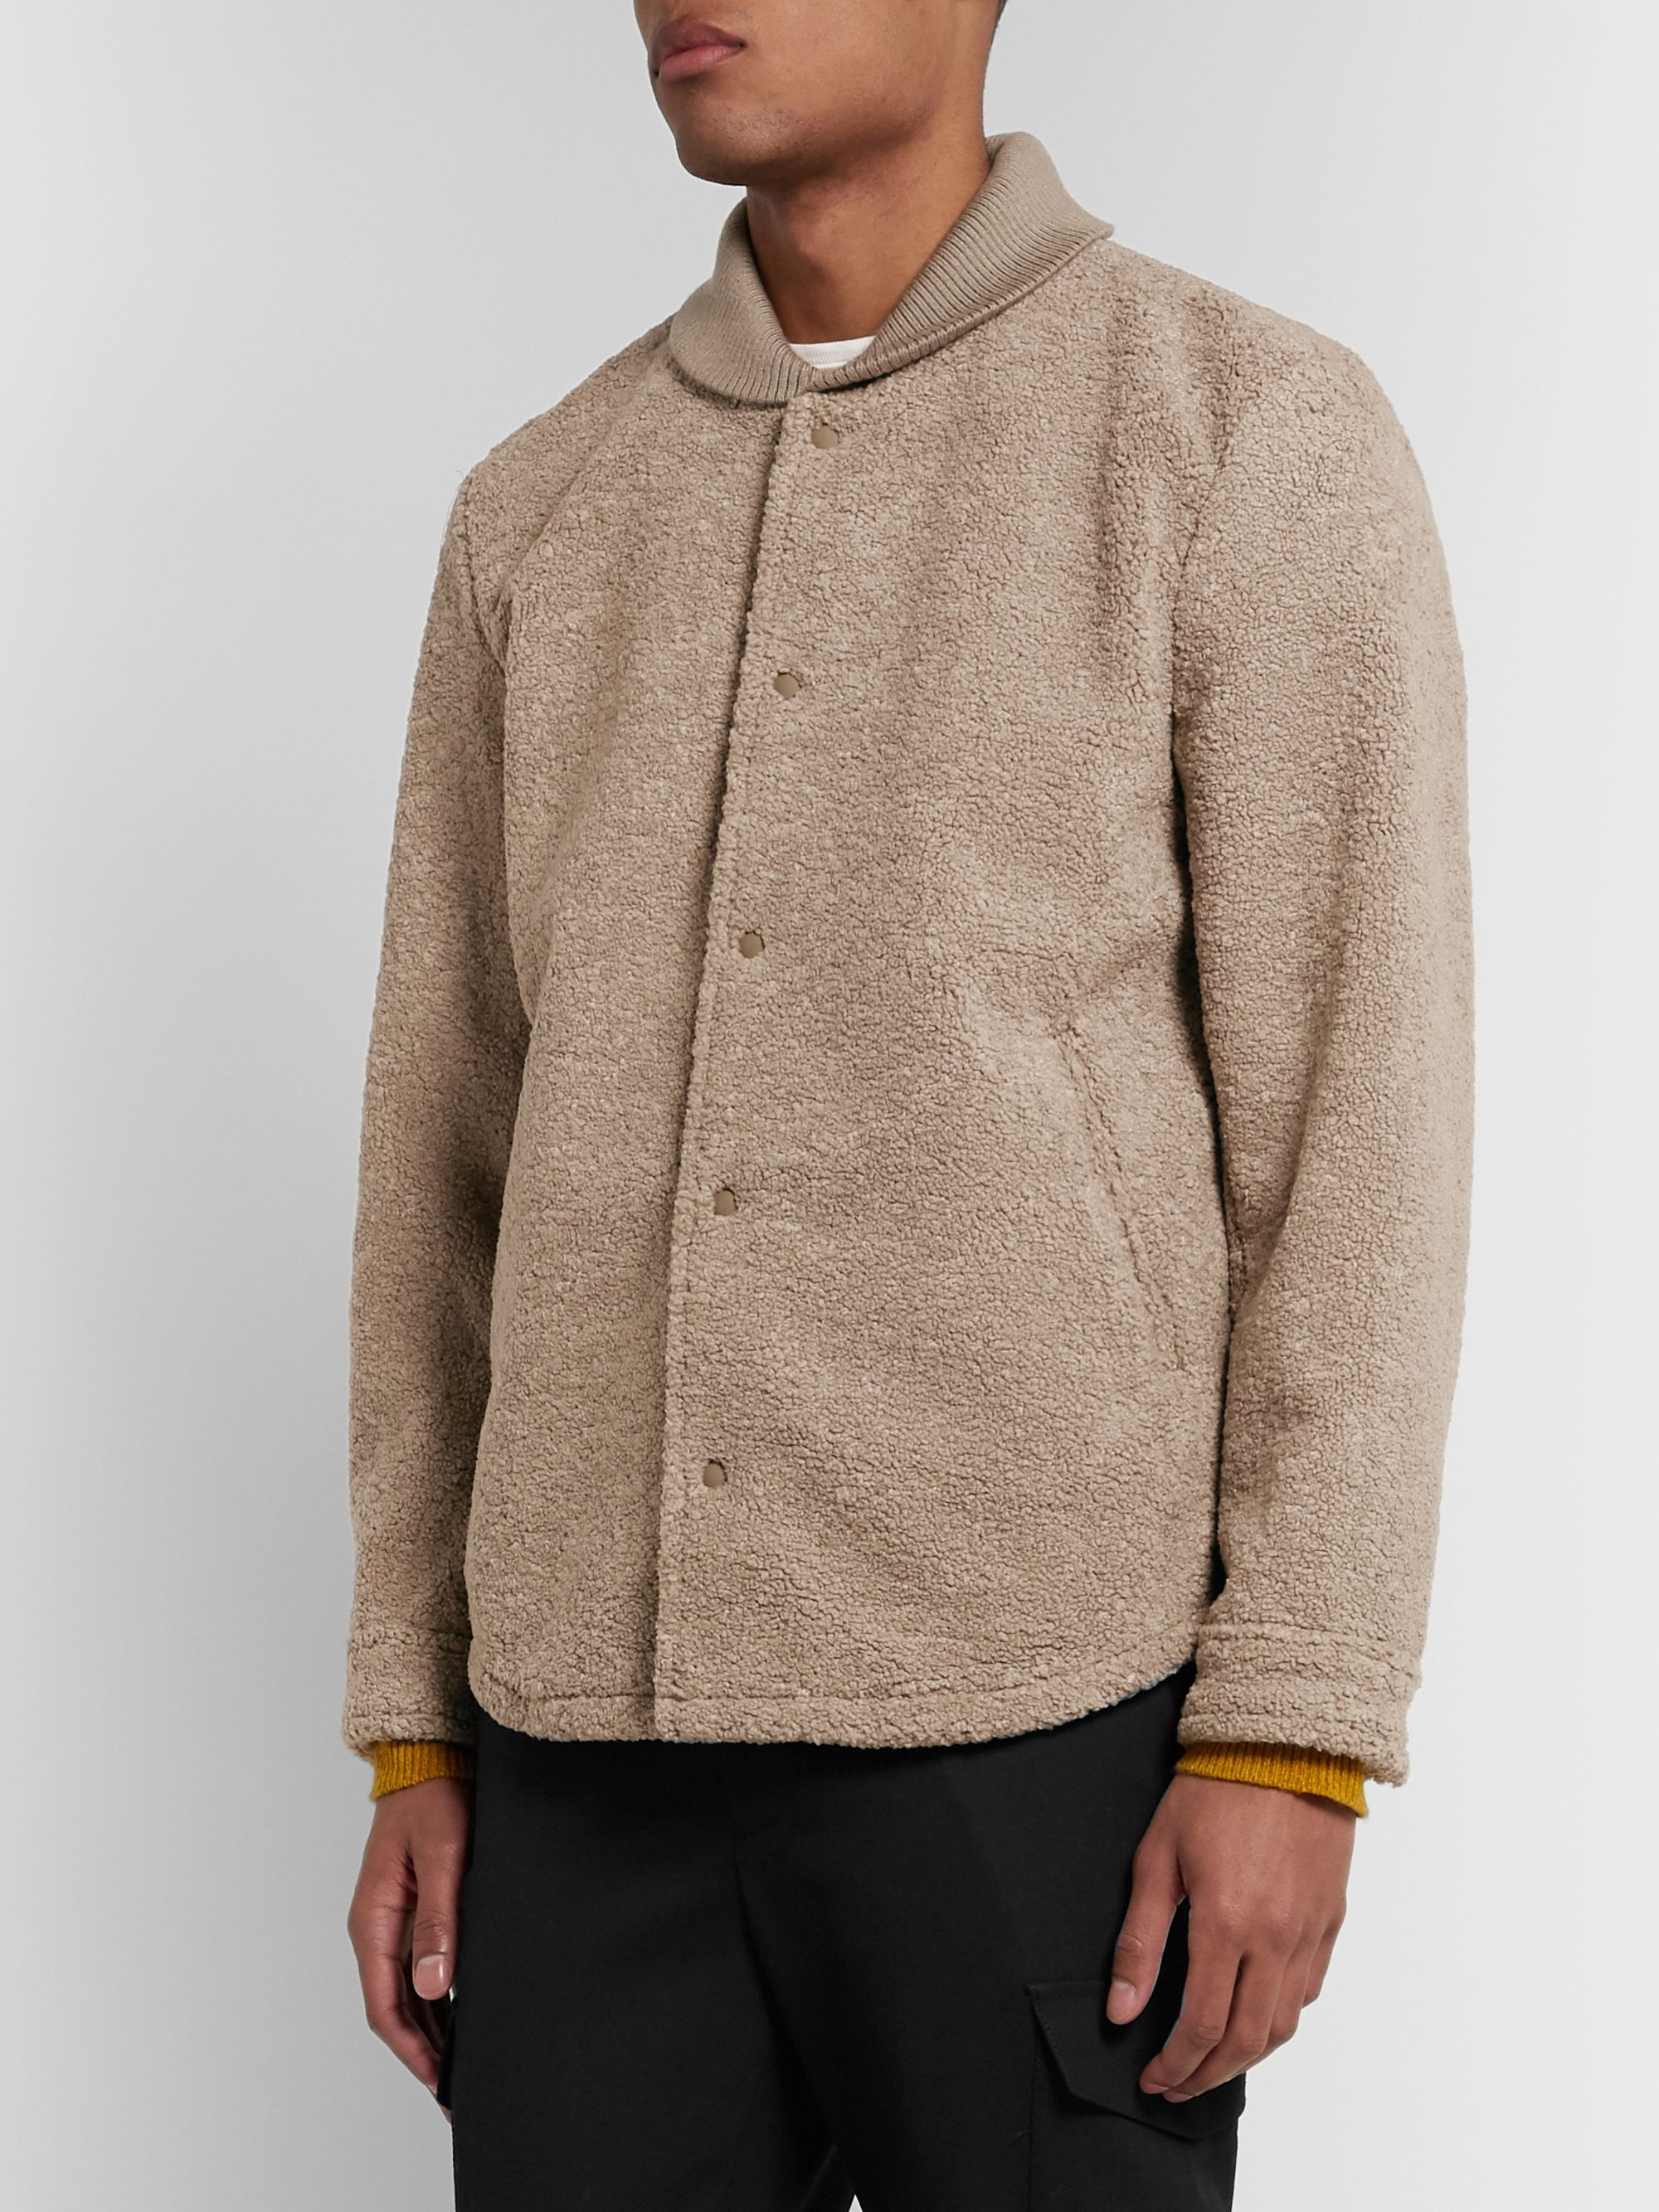 Club Monaco Fleece Jacket